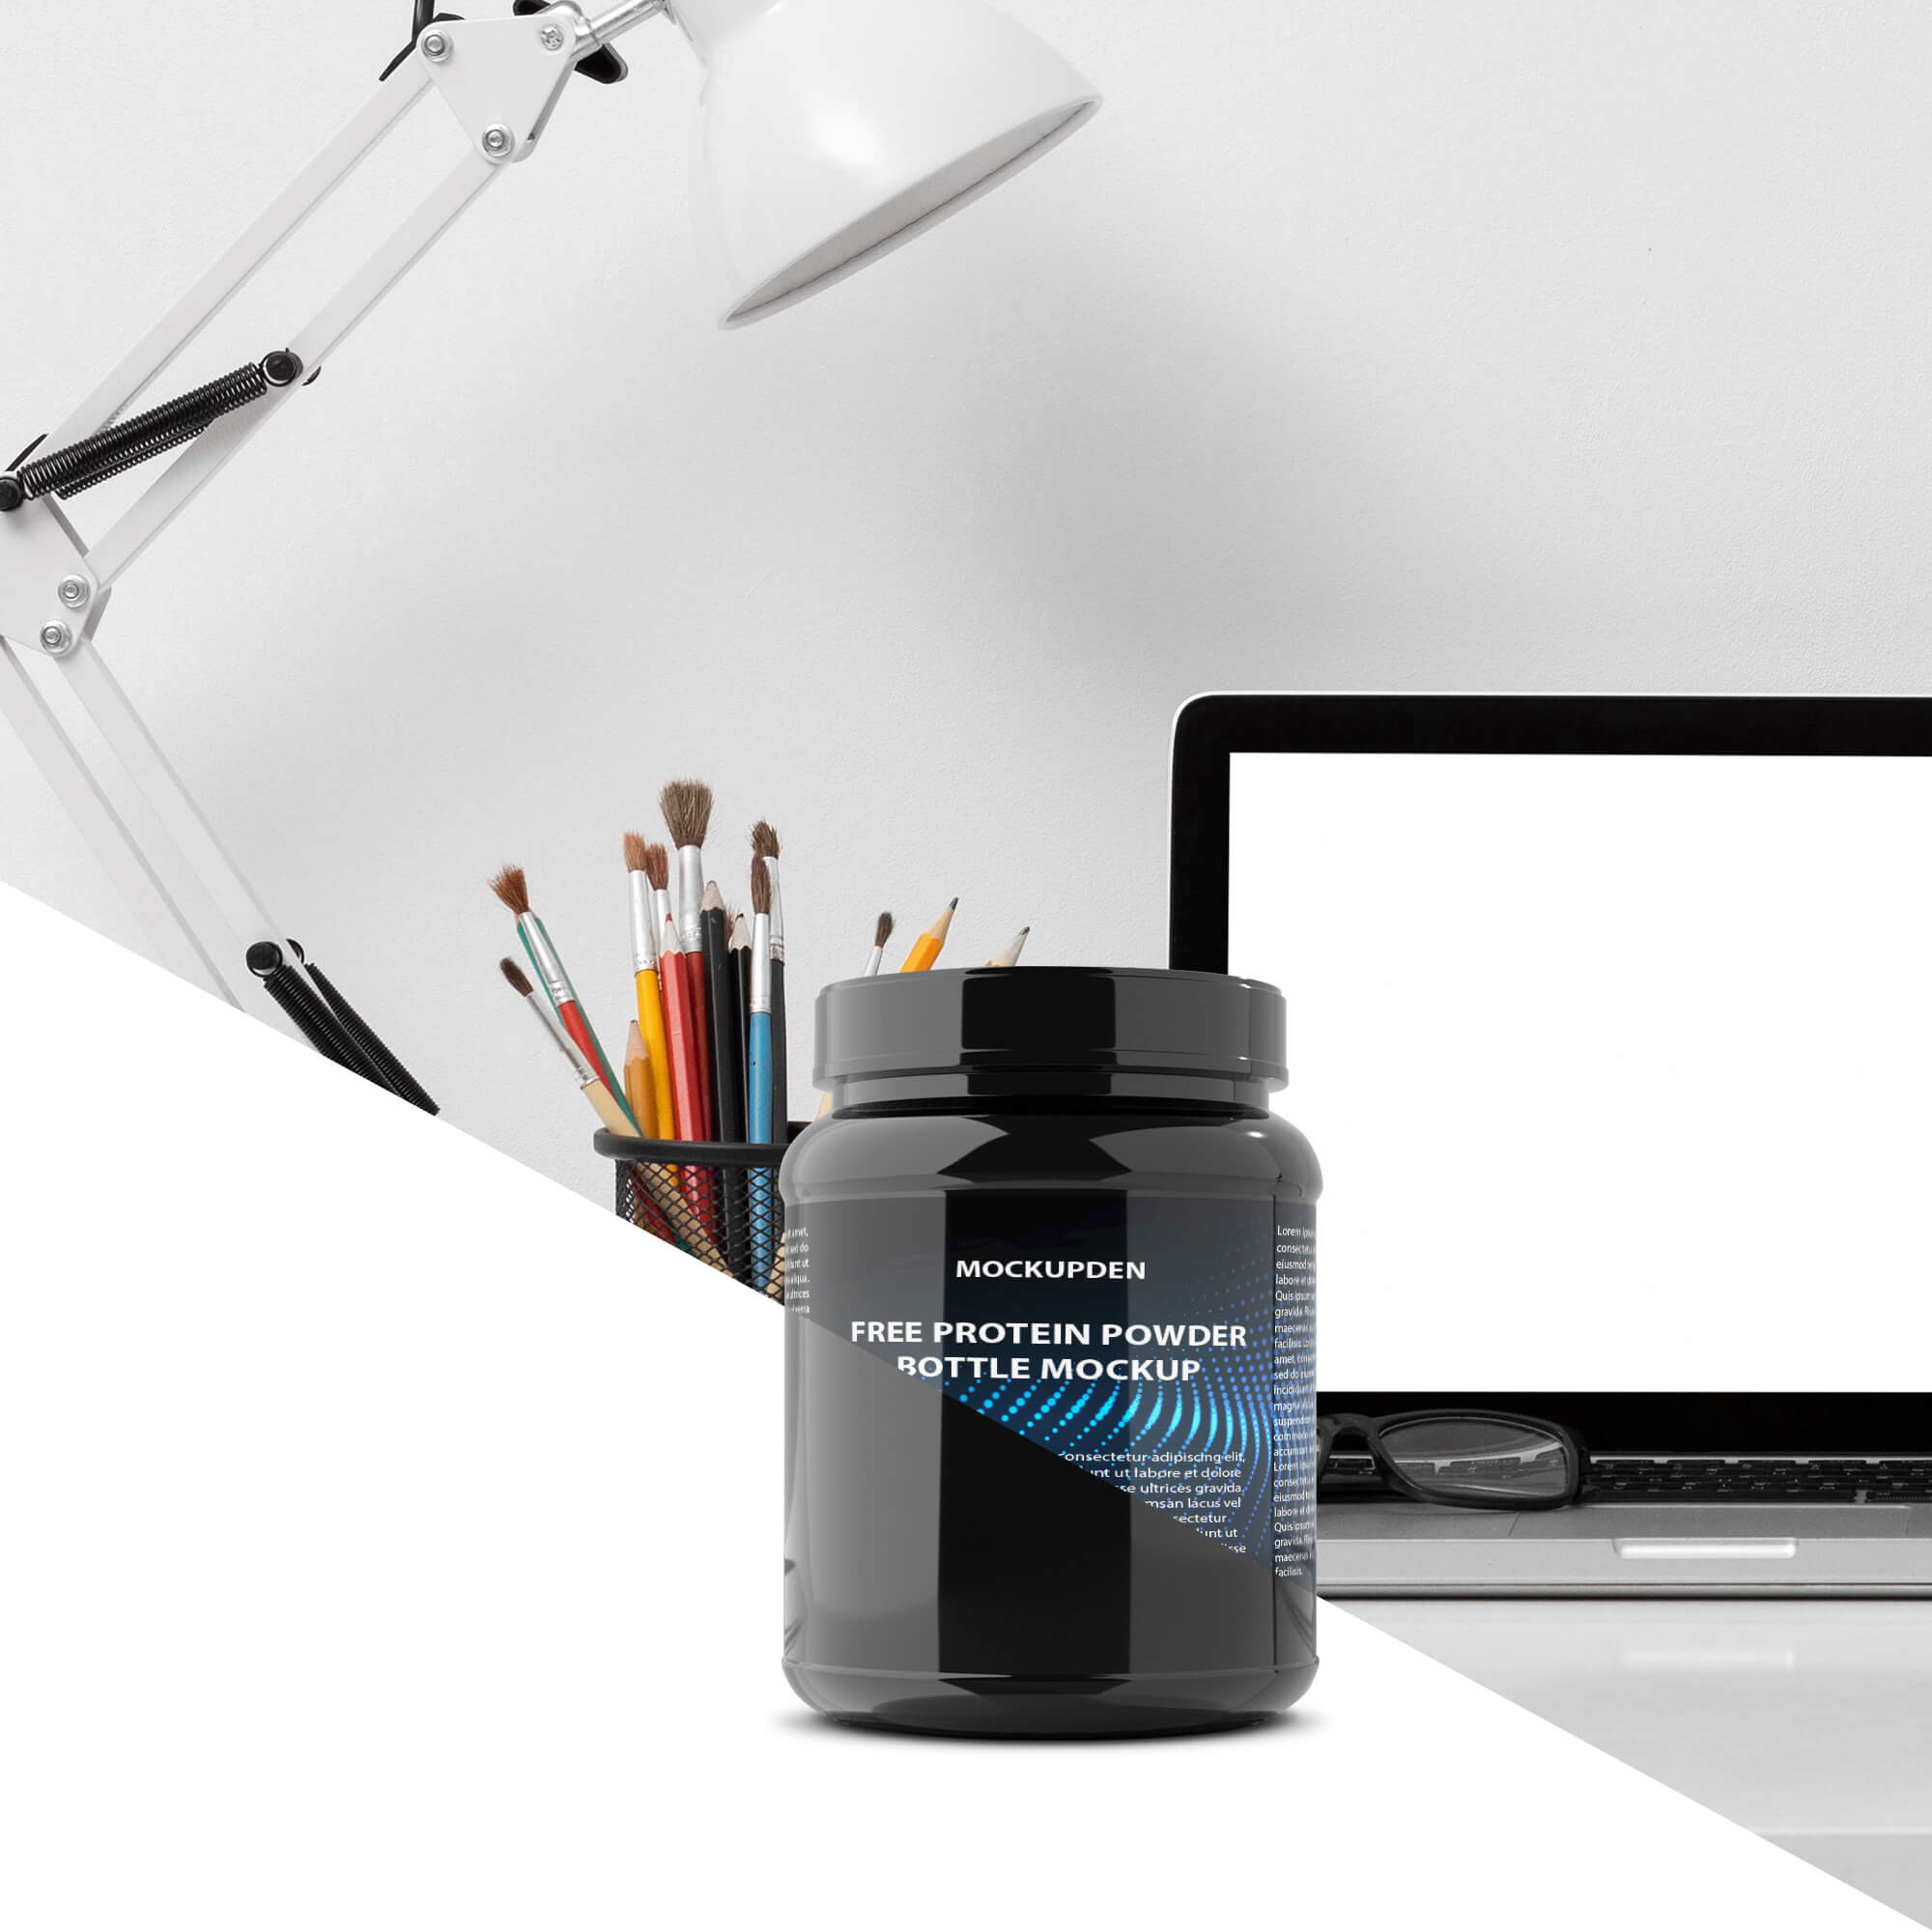 Editable Free Protein Powder Bottle Mockup PSD Template